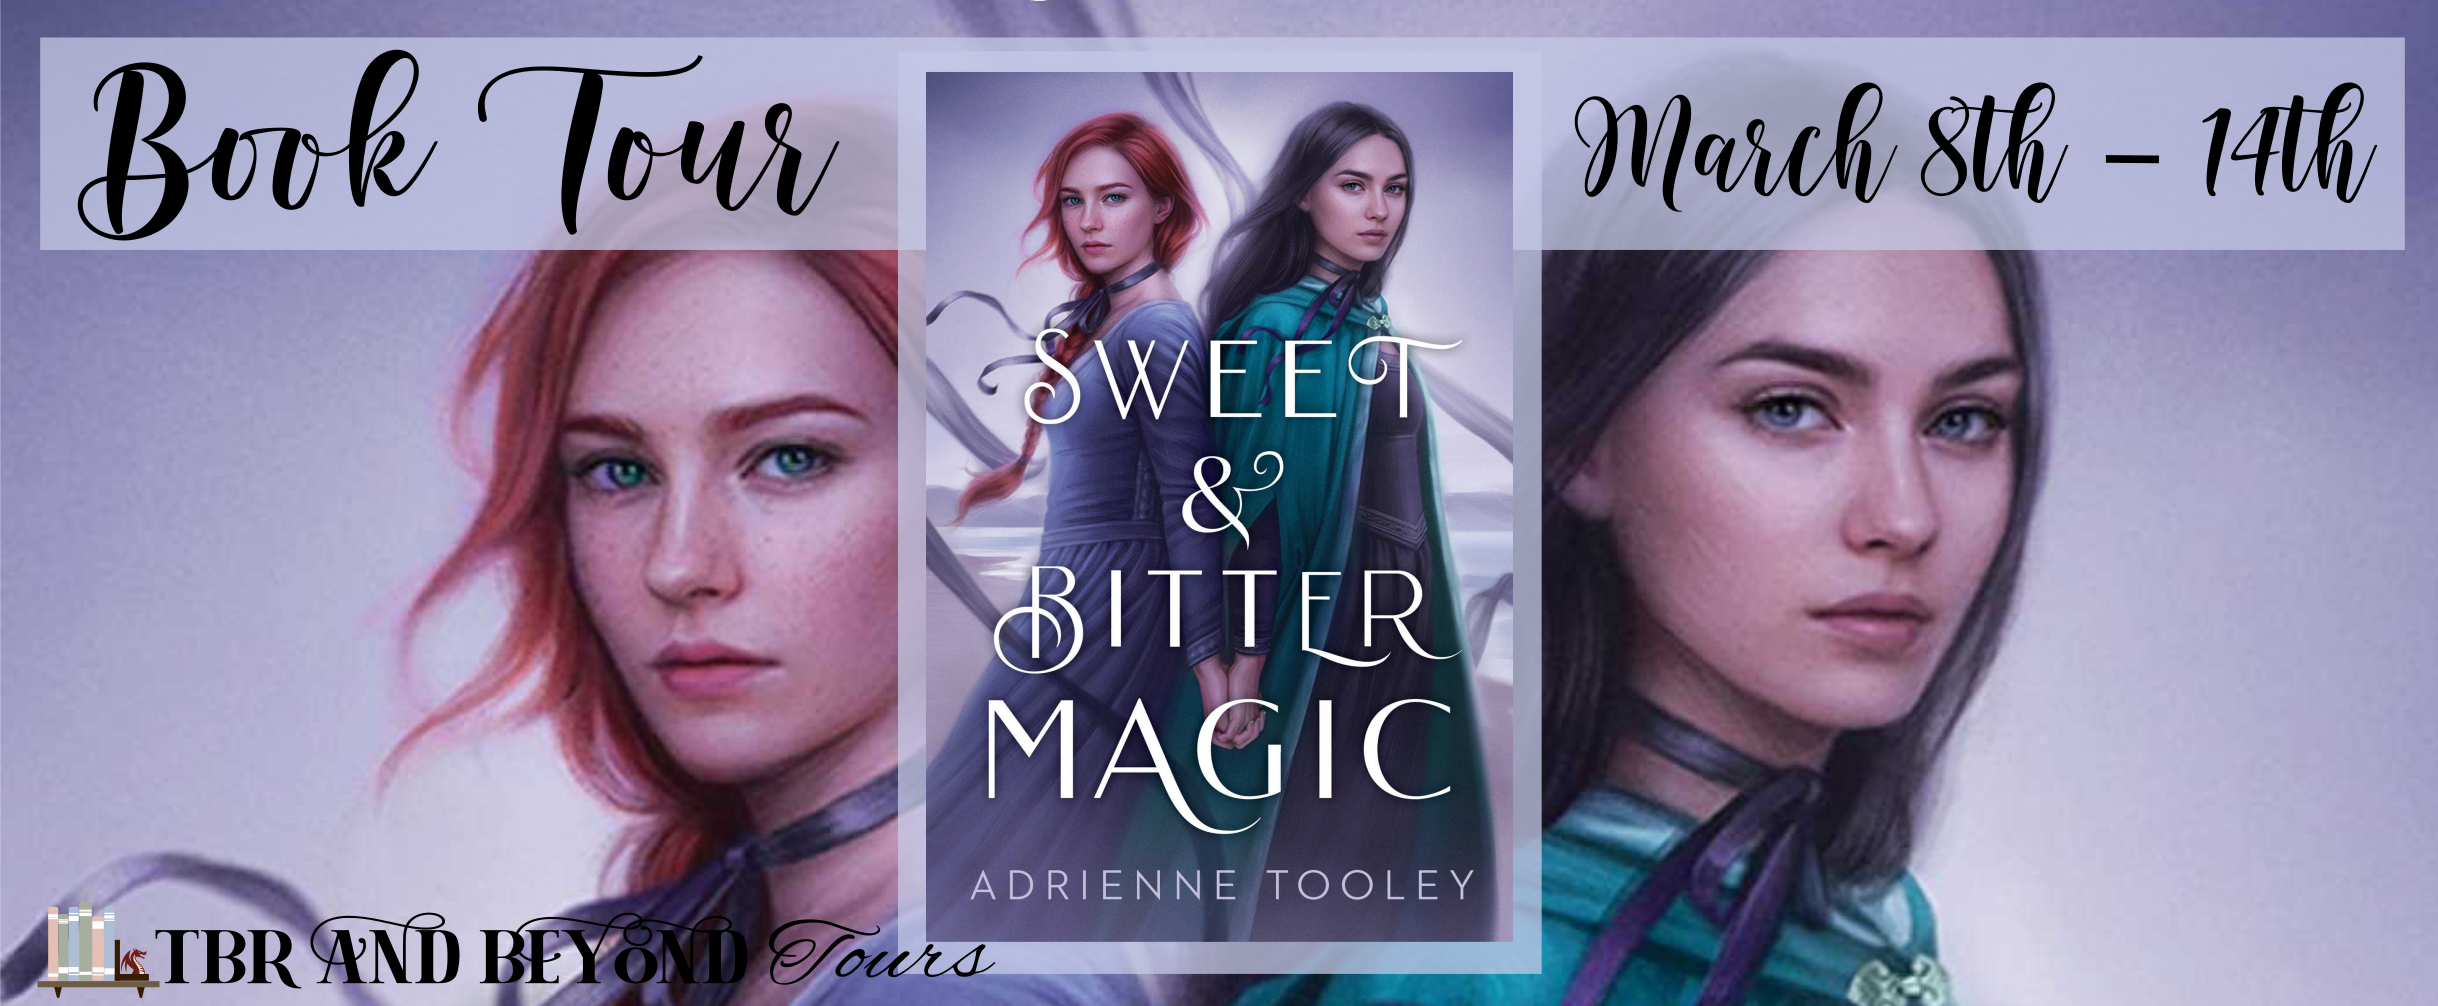 Blog Tour: Sweet & Bitter Magic by Adrienne Tooley (Interview + Giveaway!)